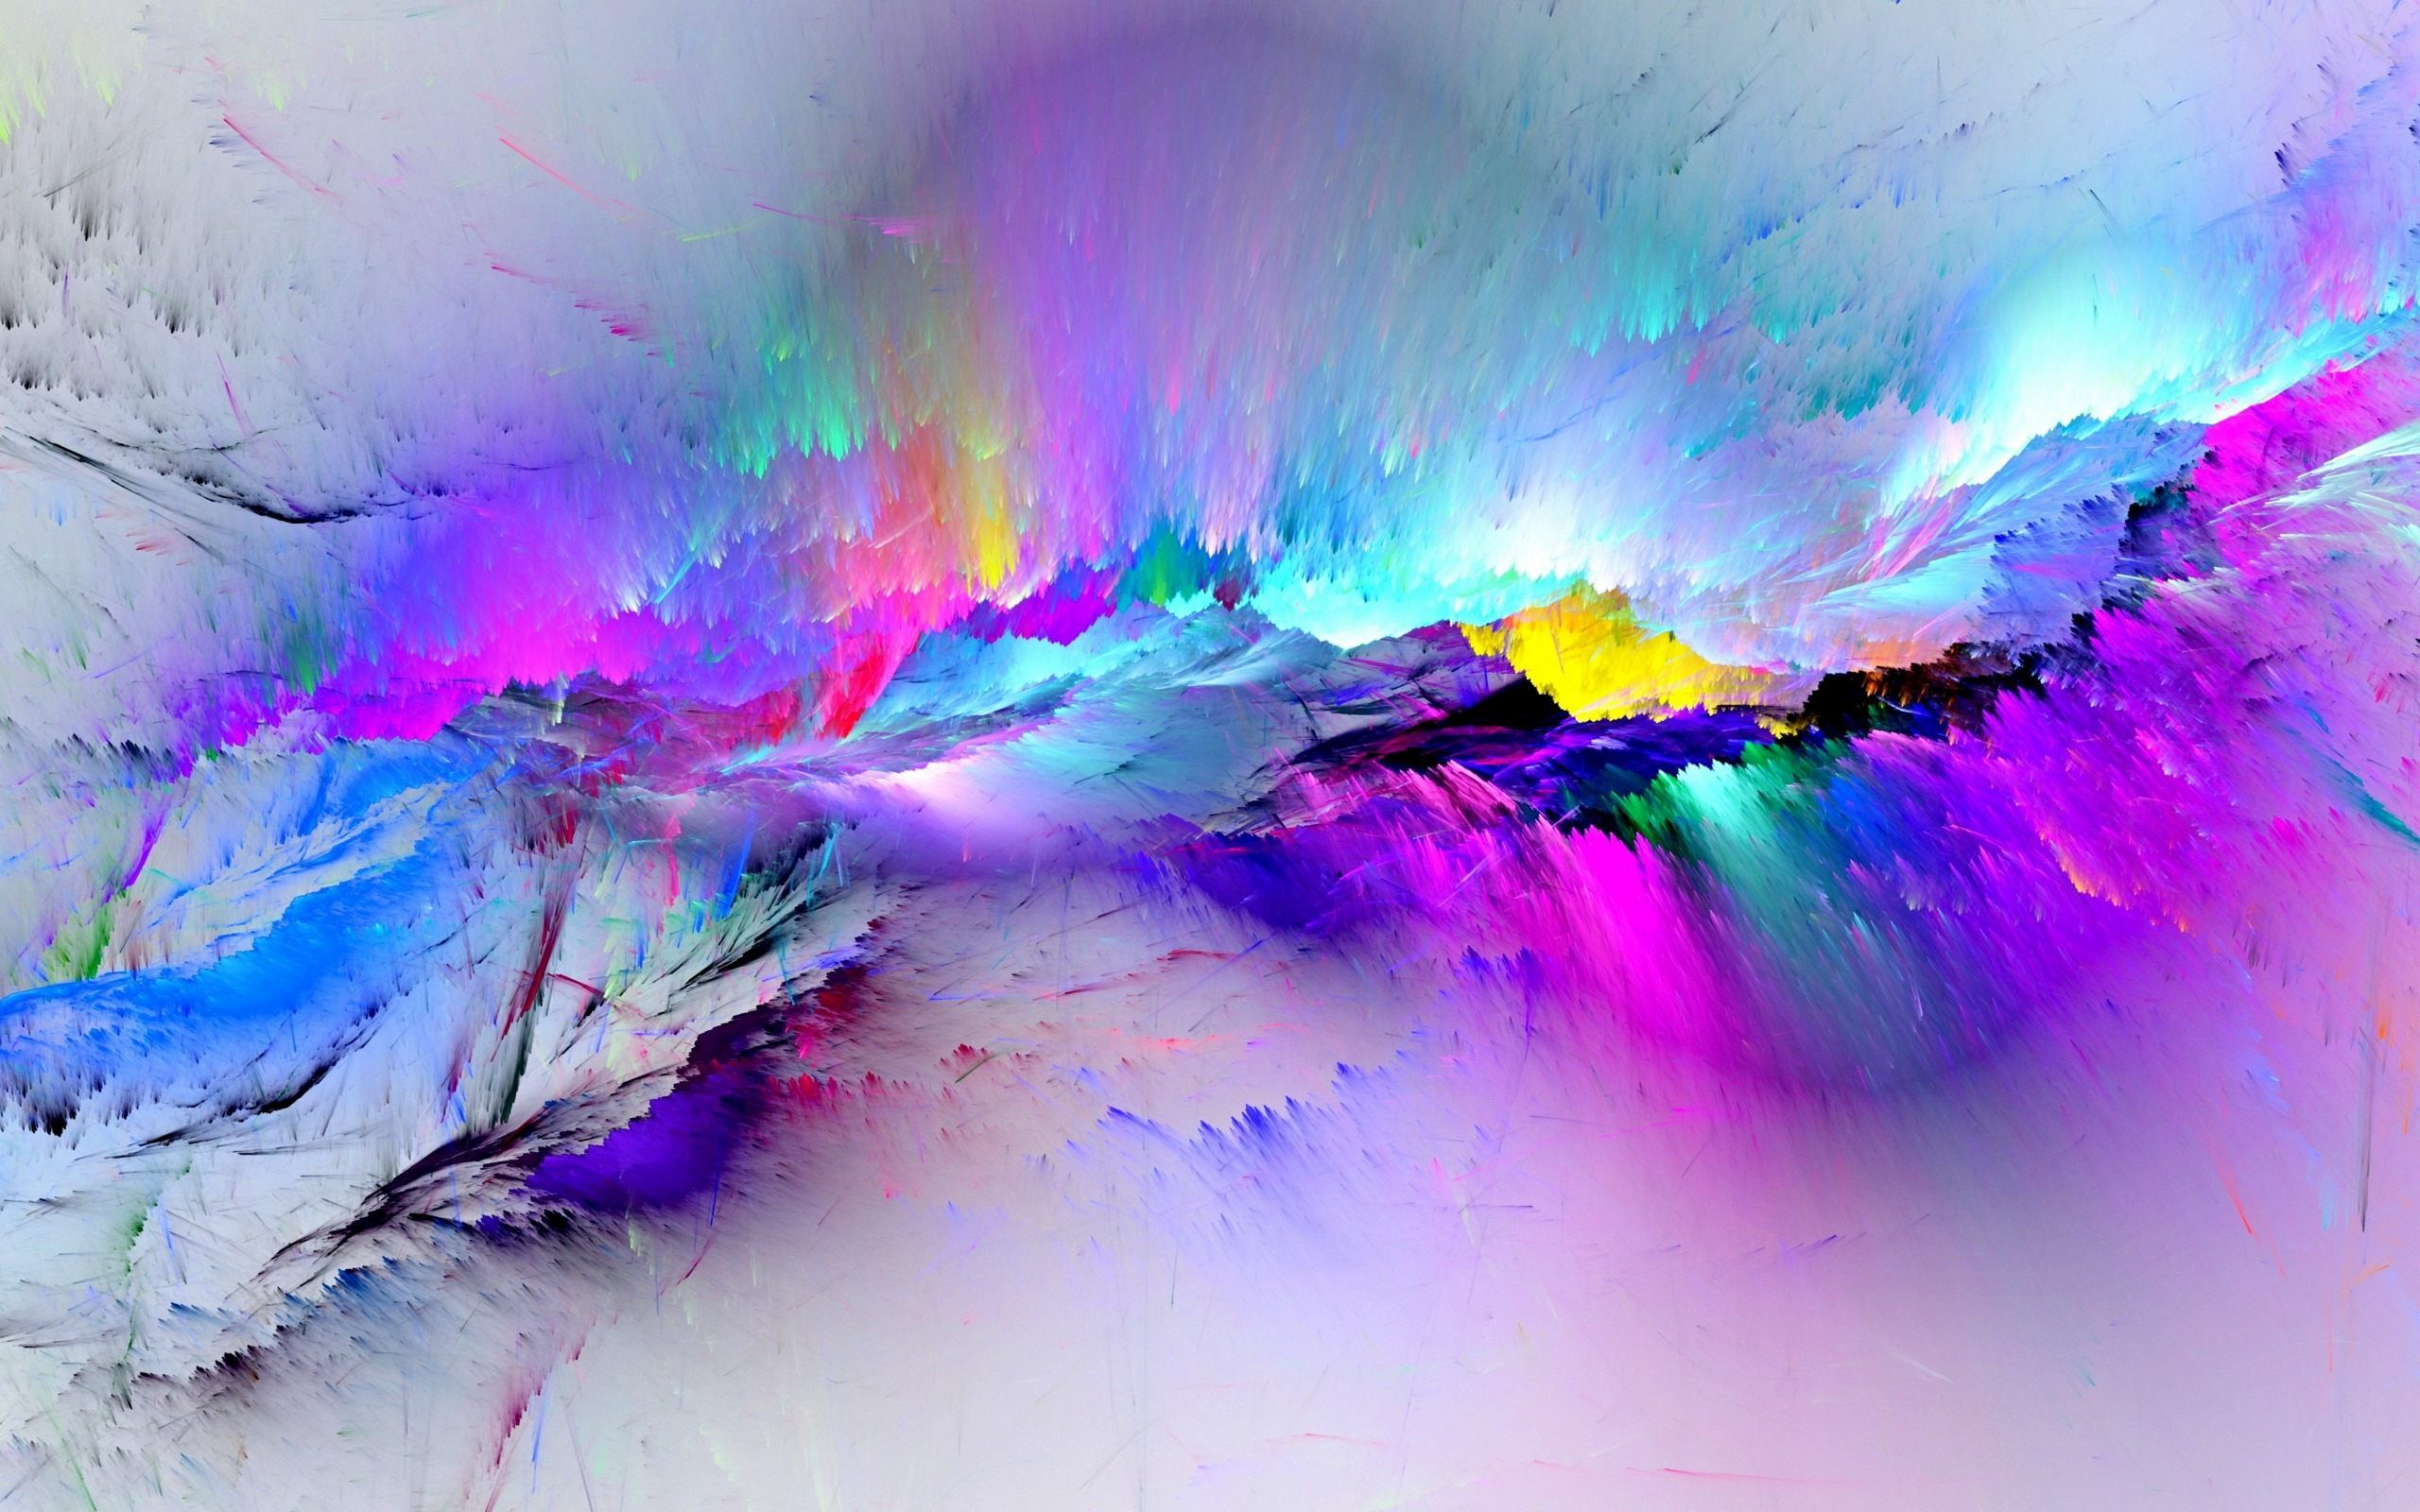 abstract hd wallpapers 1080p #abstracthdwallpapers1080p